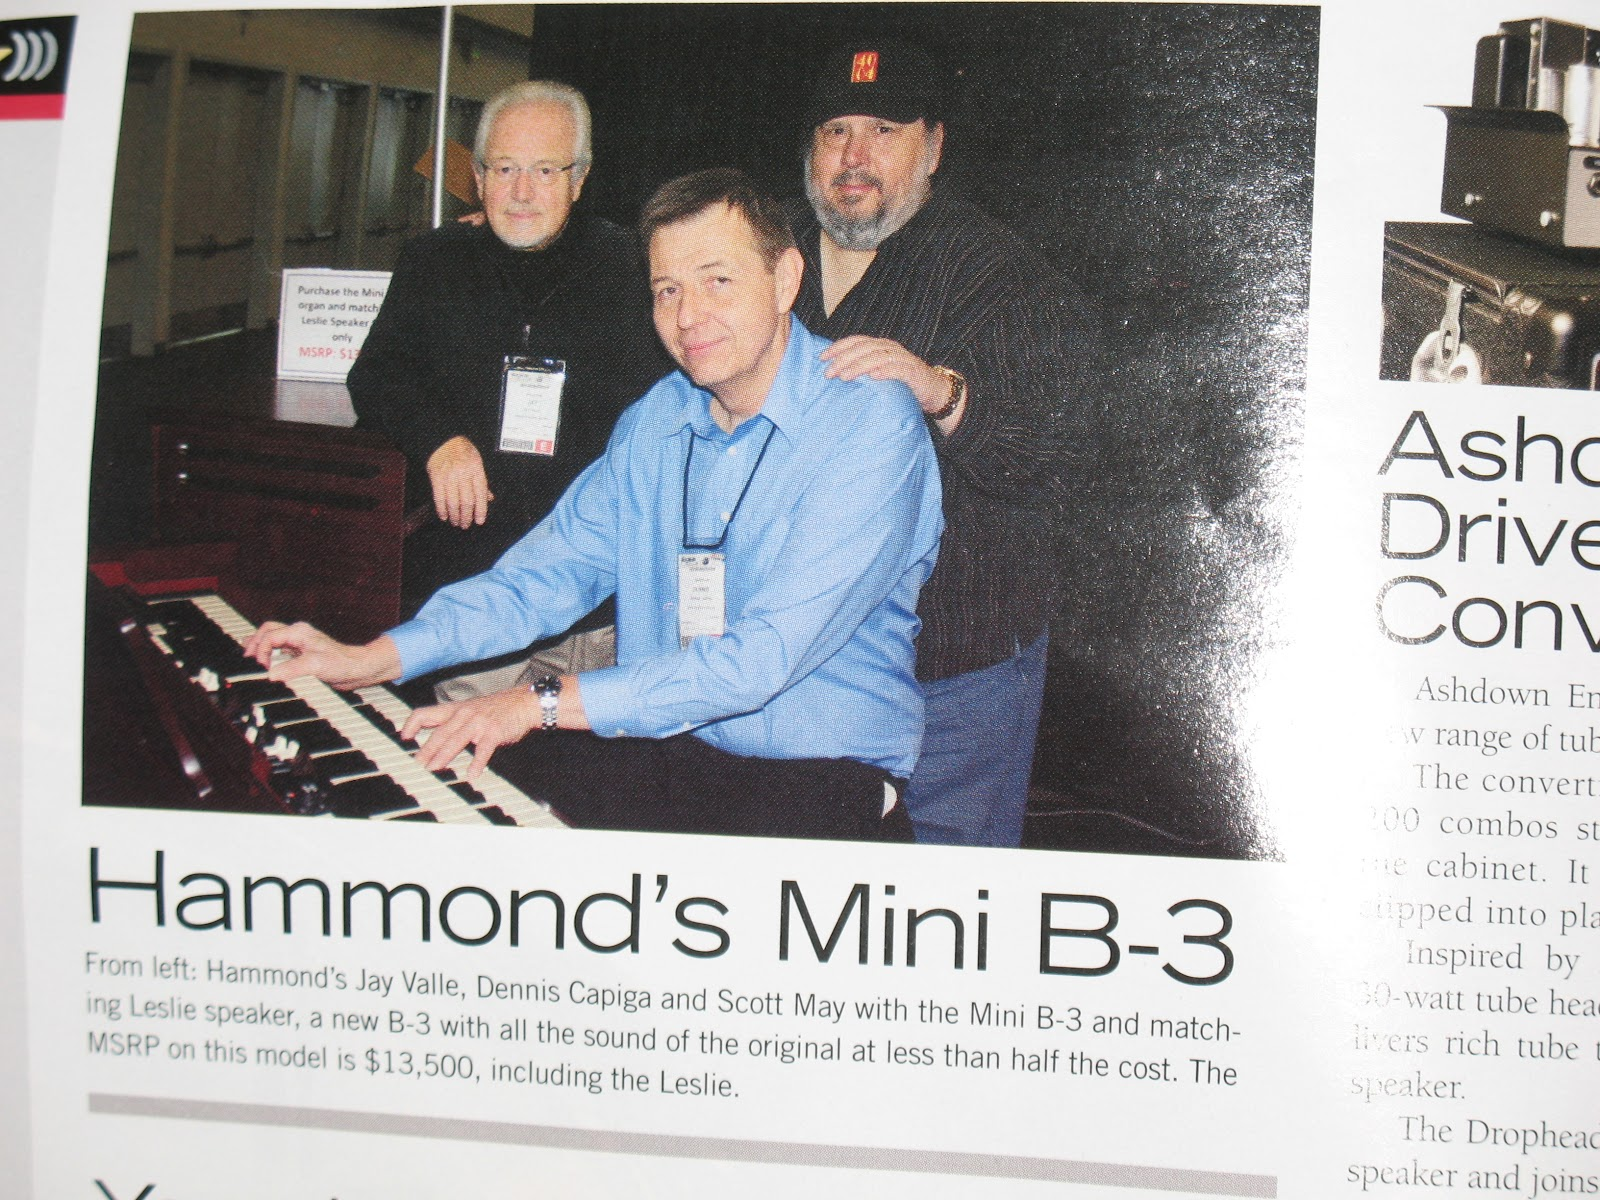 Jon hammond day 1 h ttp www jonhammondband com news html from namm